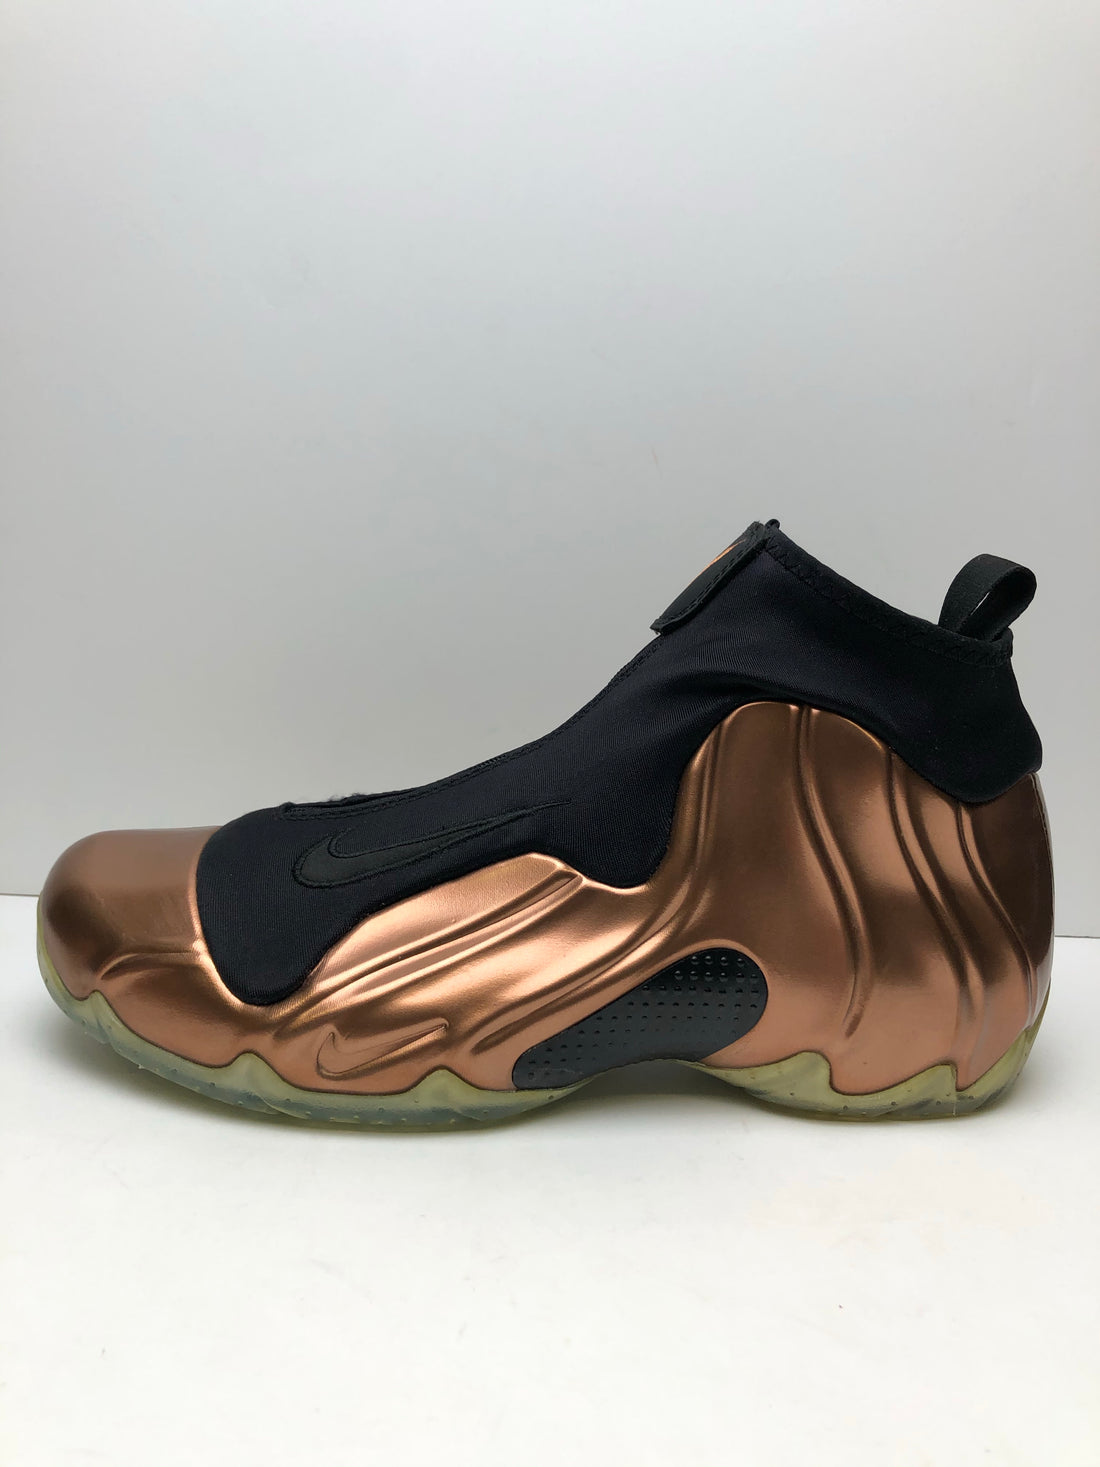 Nike Air Flightposite Copper (2014)